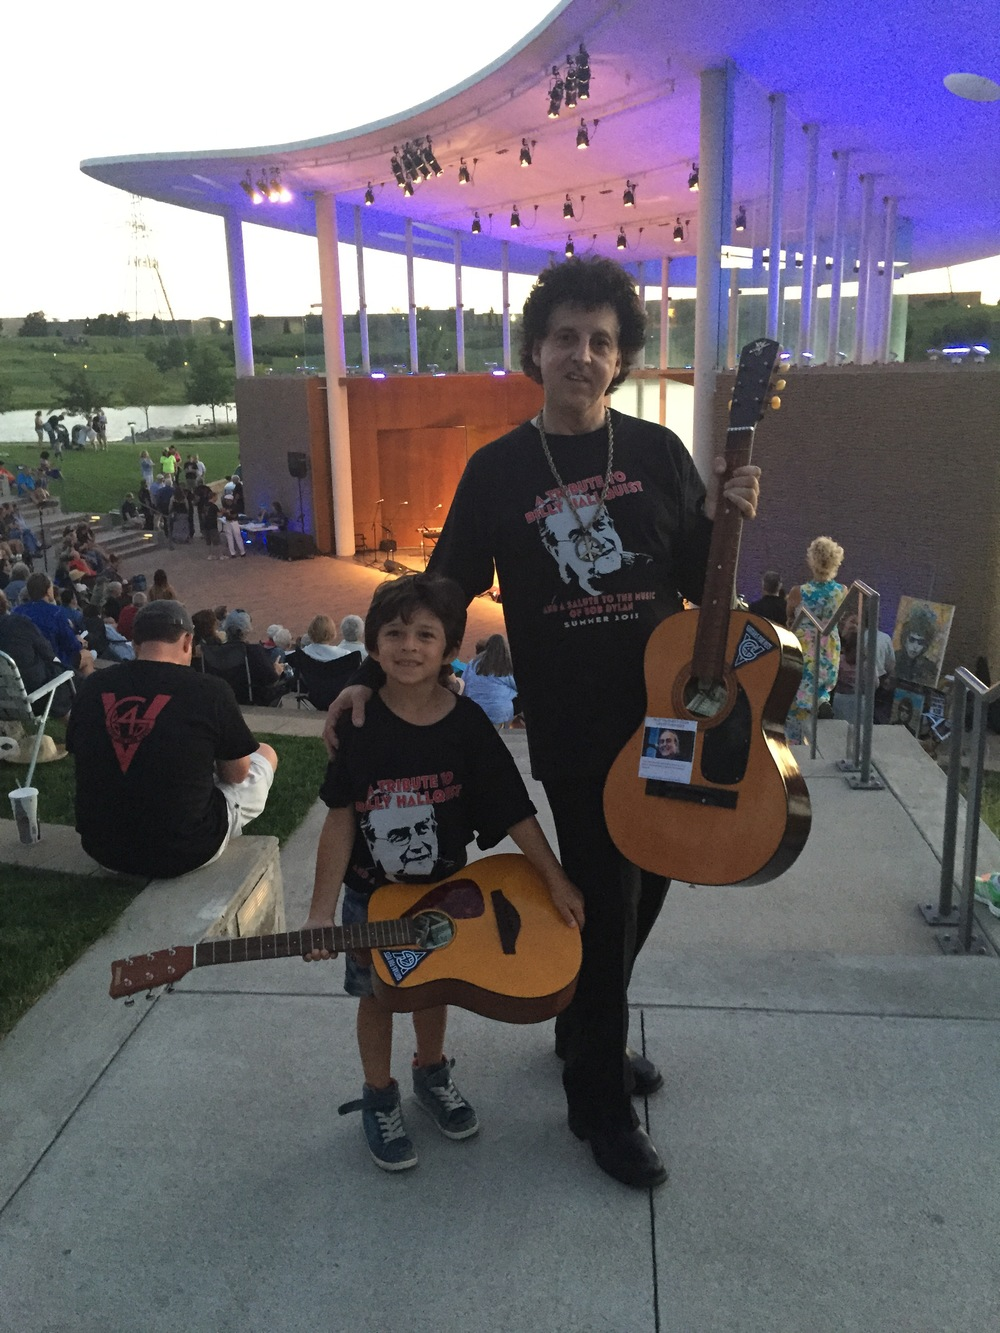 Abe Percansky-Segal and Magic Marc / Town Green Amphitheatre / Maple Grove, Minnesota / July 29th, 2015 / Photo by Lisa Goldwater